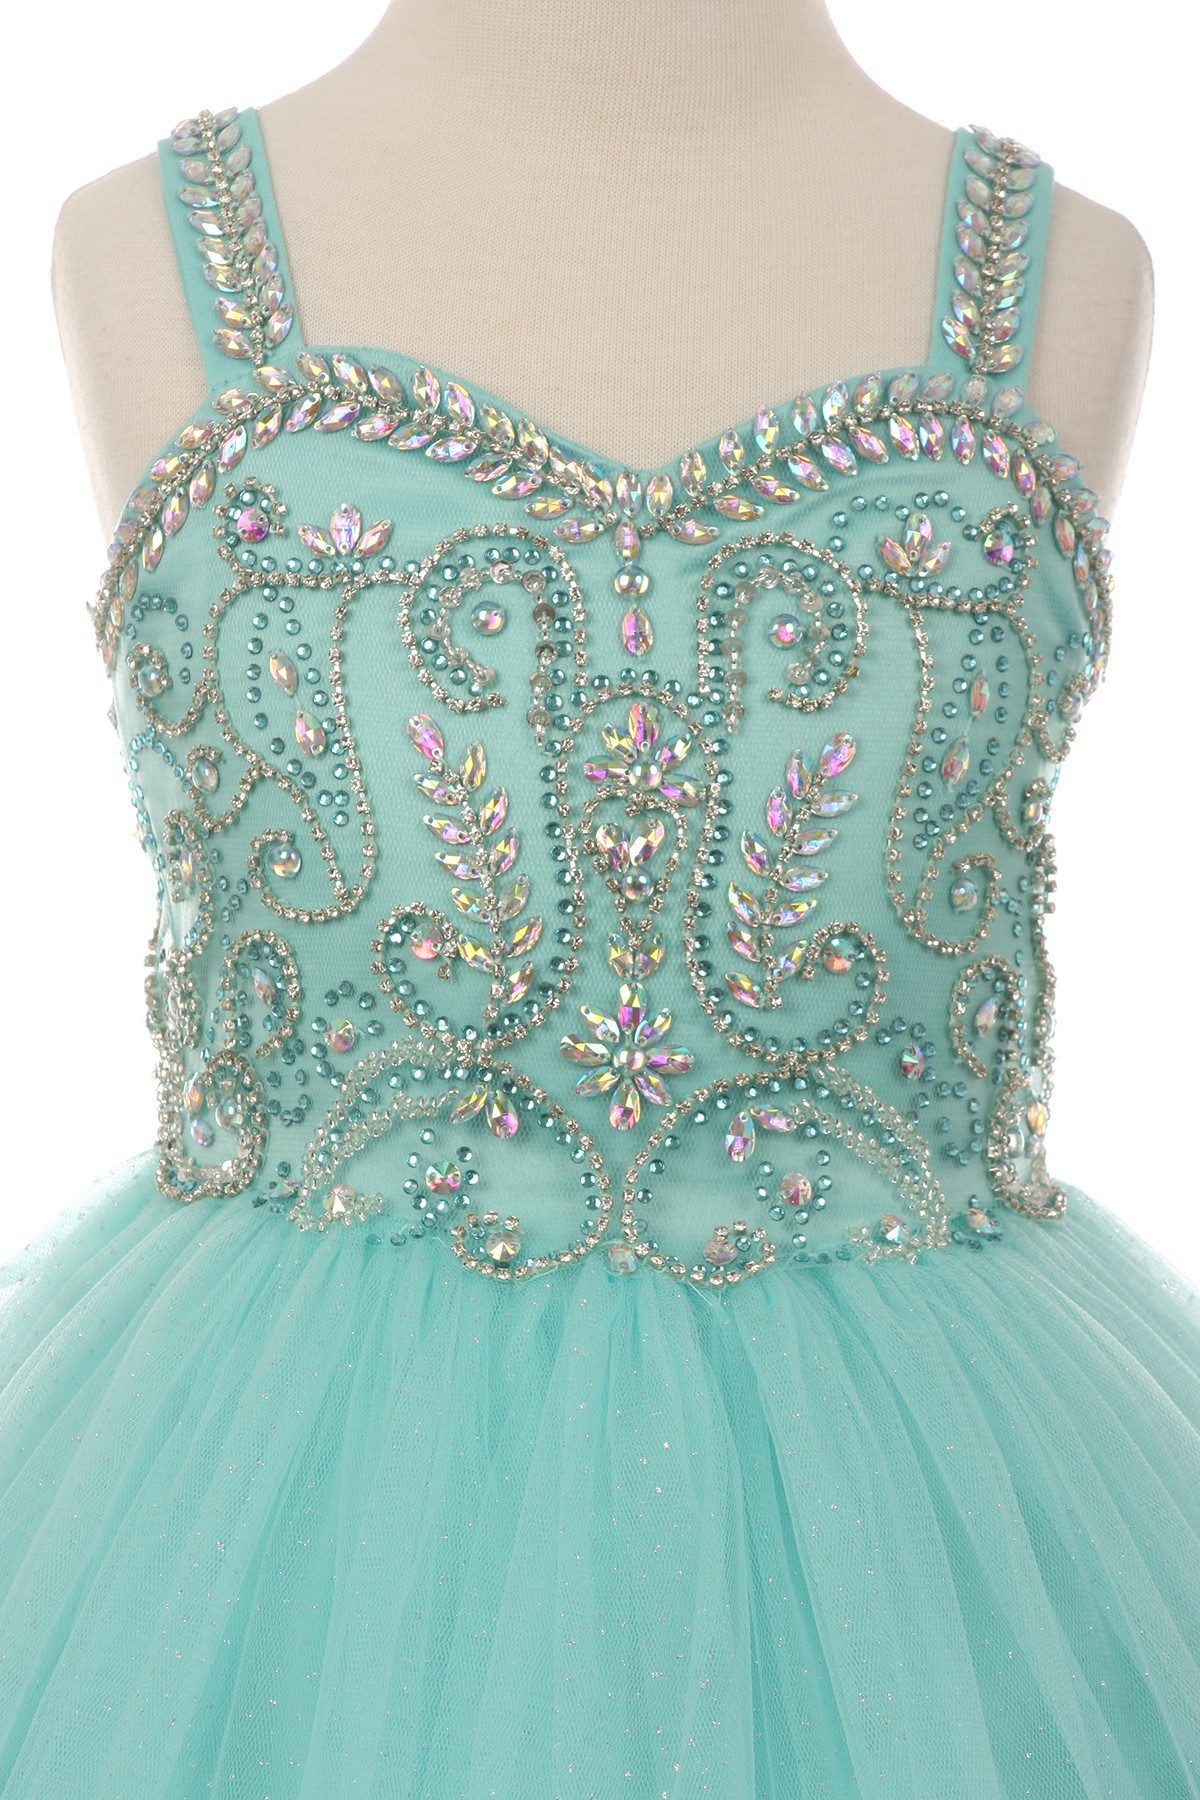 2 piece rhinestone dress